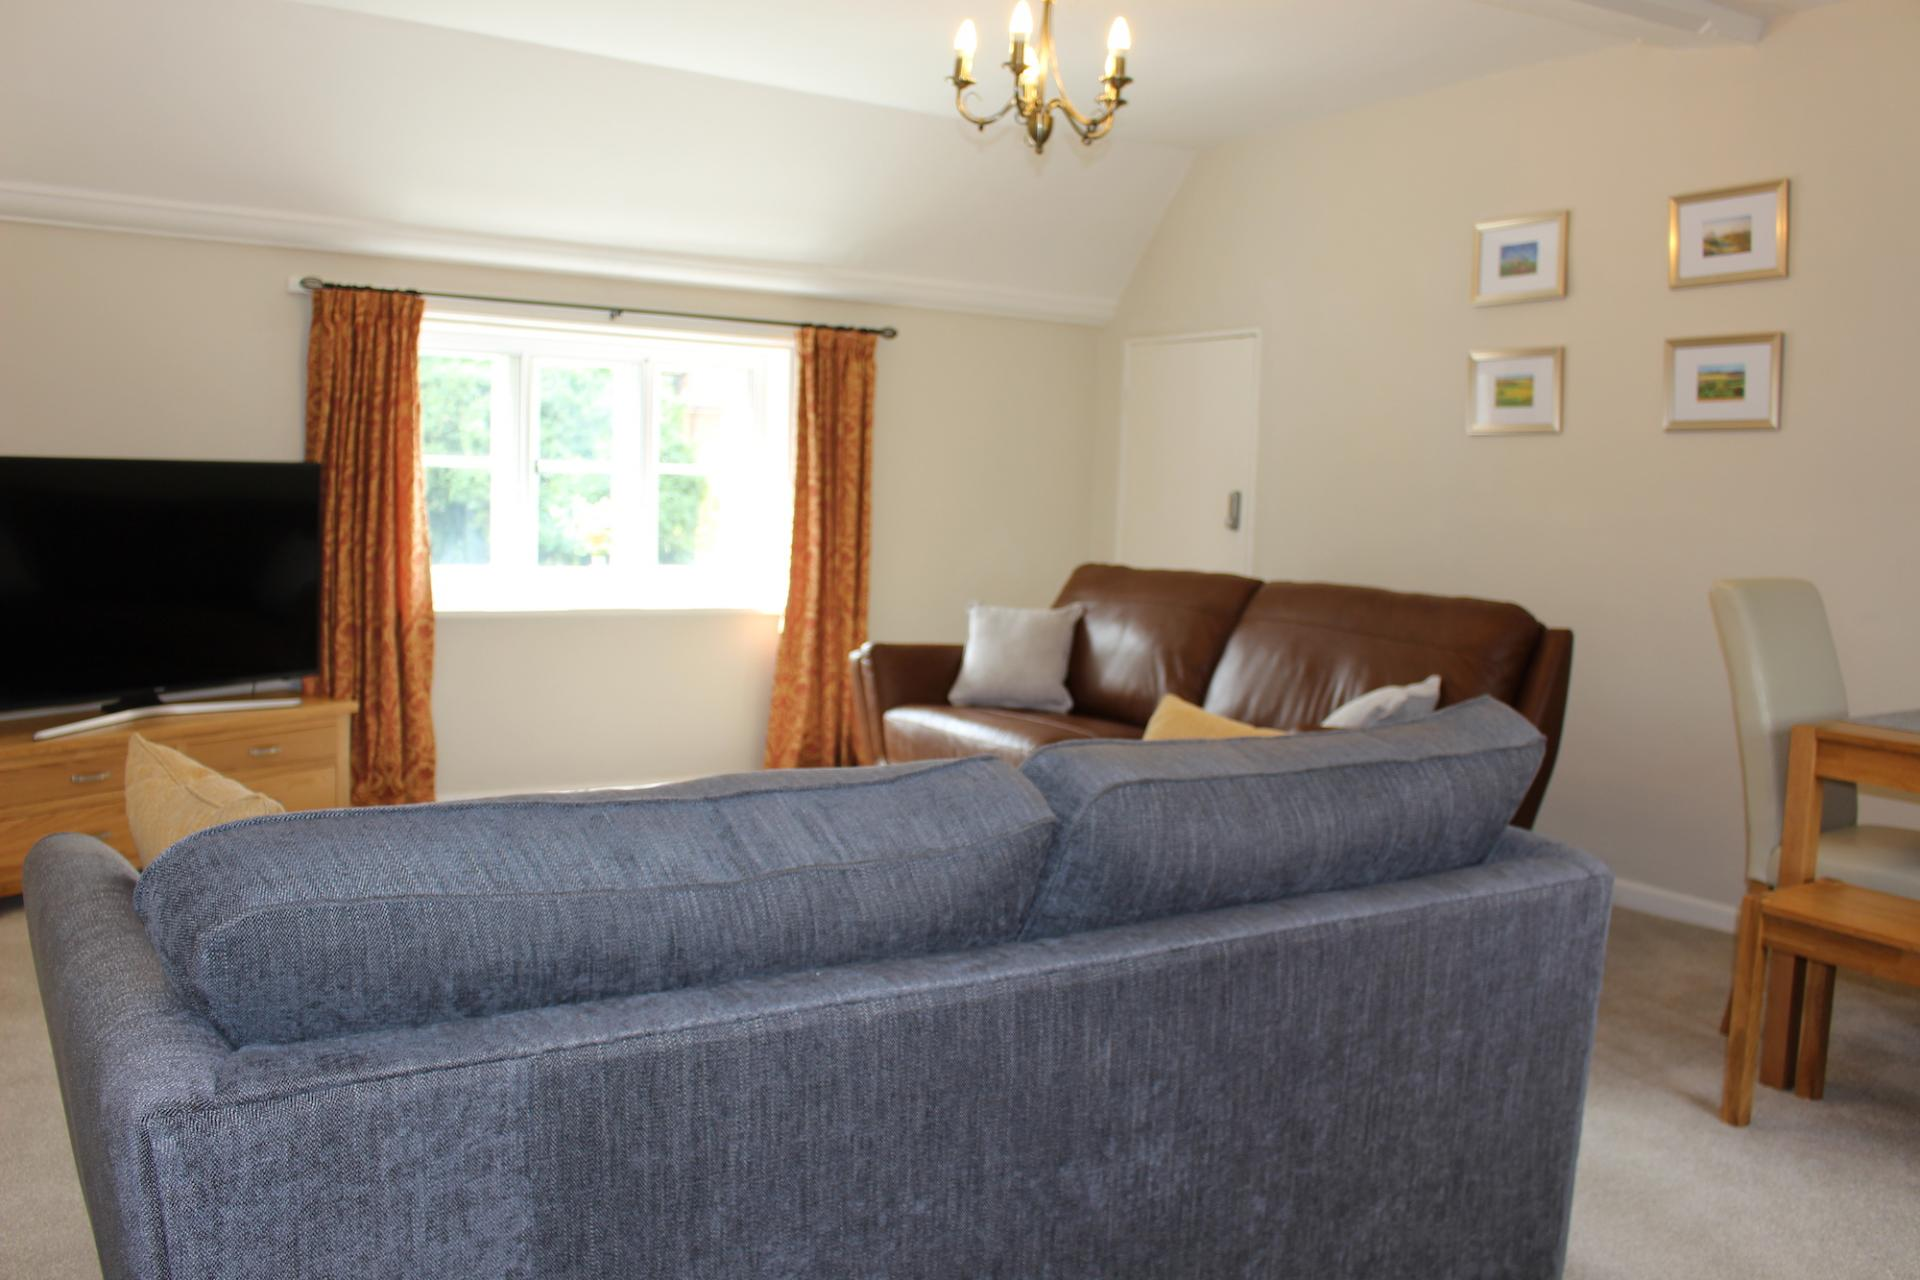 Window at Chilton Serviced Apartments